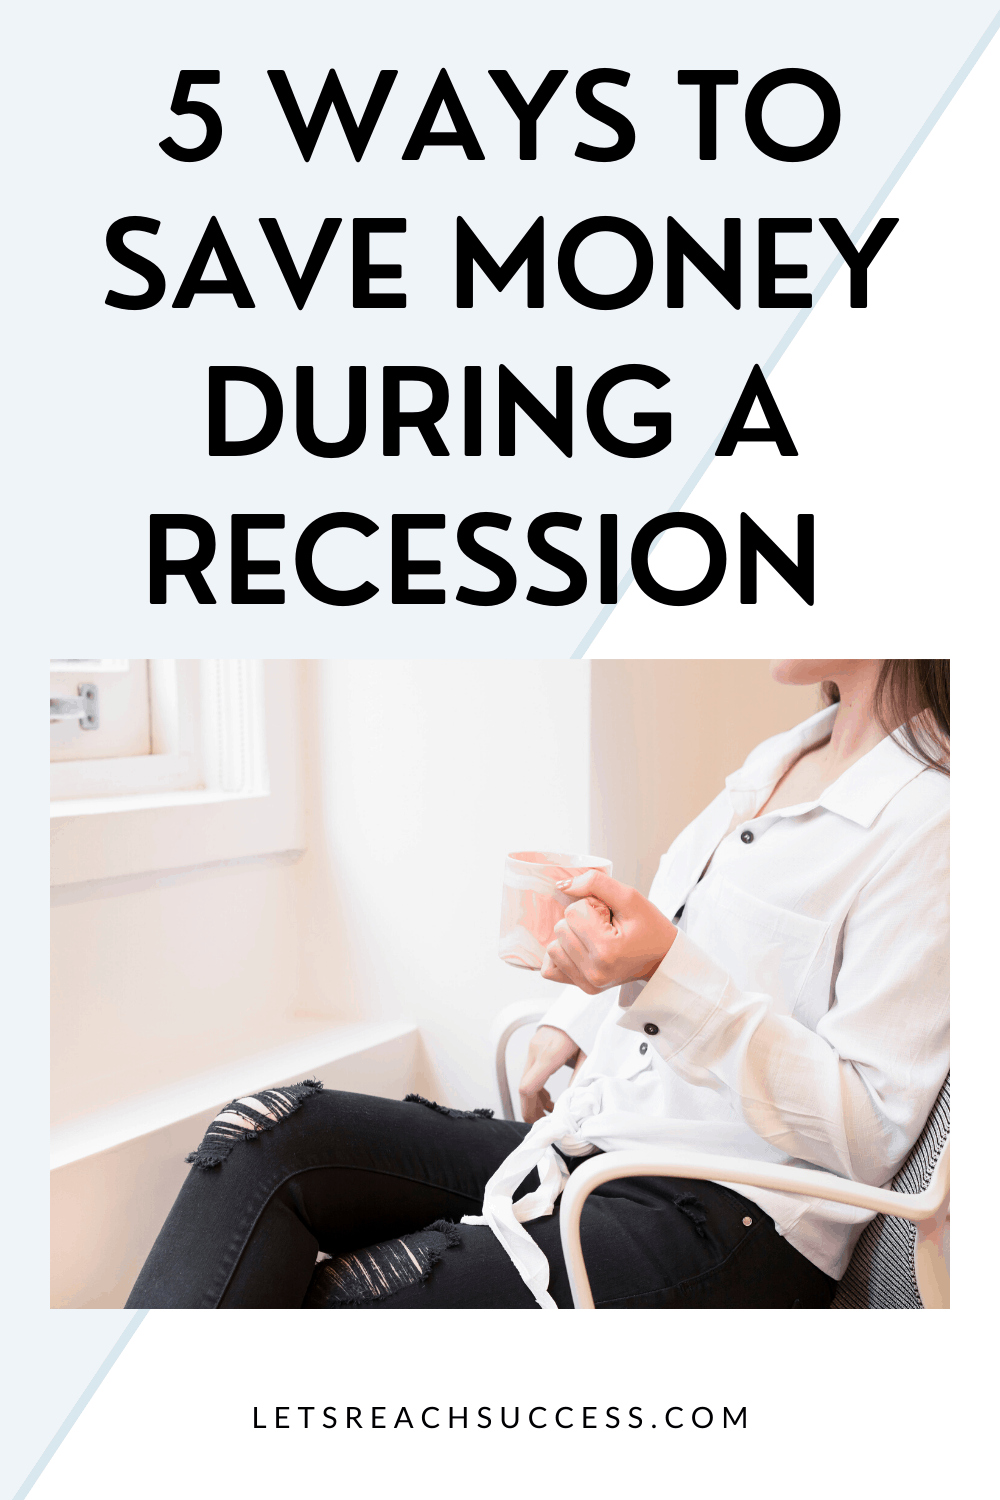 Now's the time to start saving money wherever you can and think about ways of cutting costs. Here are a few tips for how you can be more frugal if a recession is on the way: #savemoney #moneysavingtips #savemoneyduringarecession #recessionproof #savingmoneyinarecession